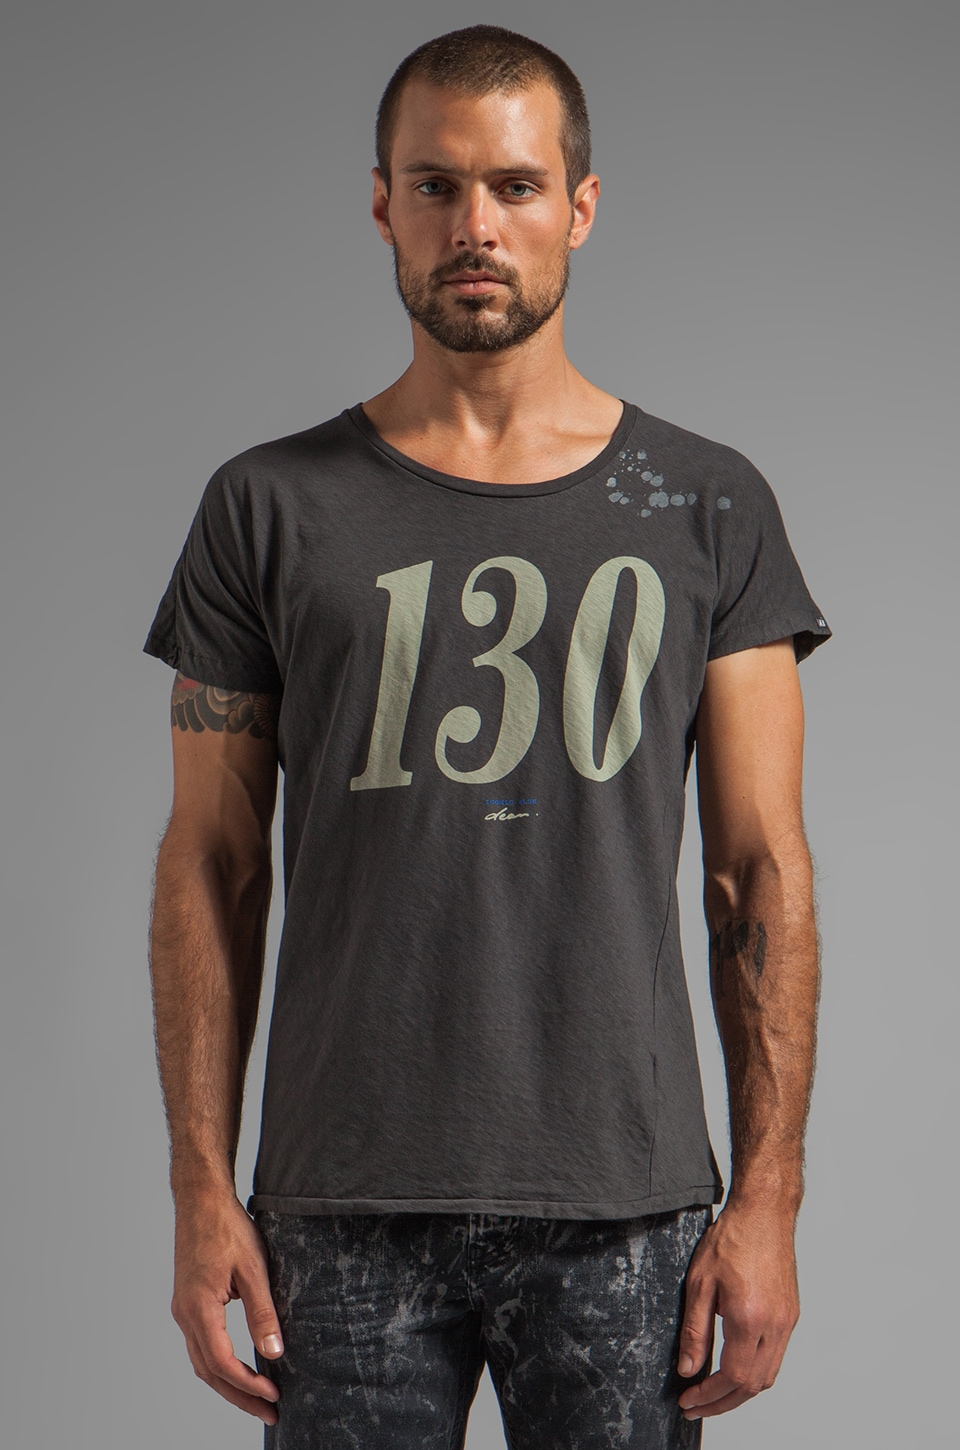 Scotch & Soda 130 Tee in Black